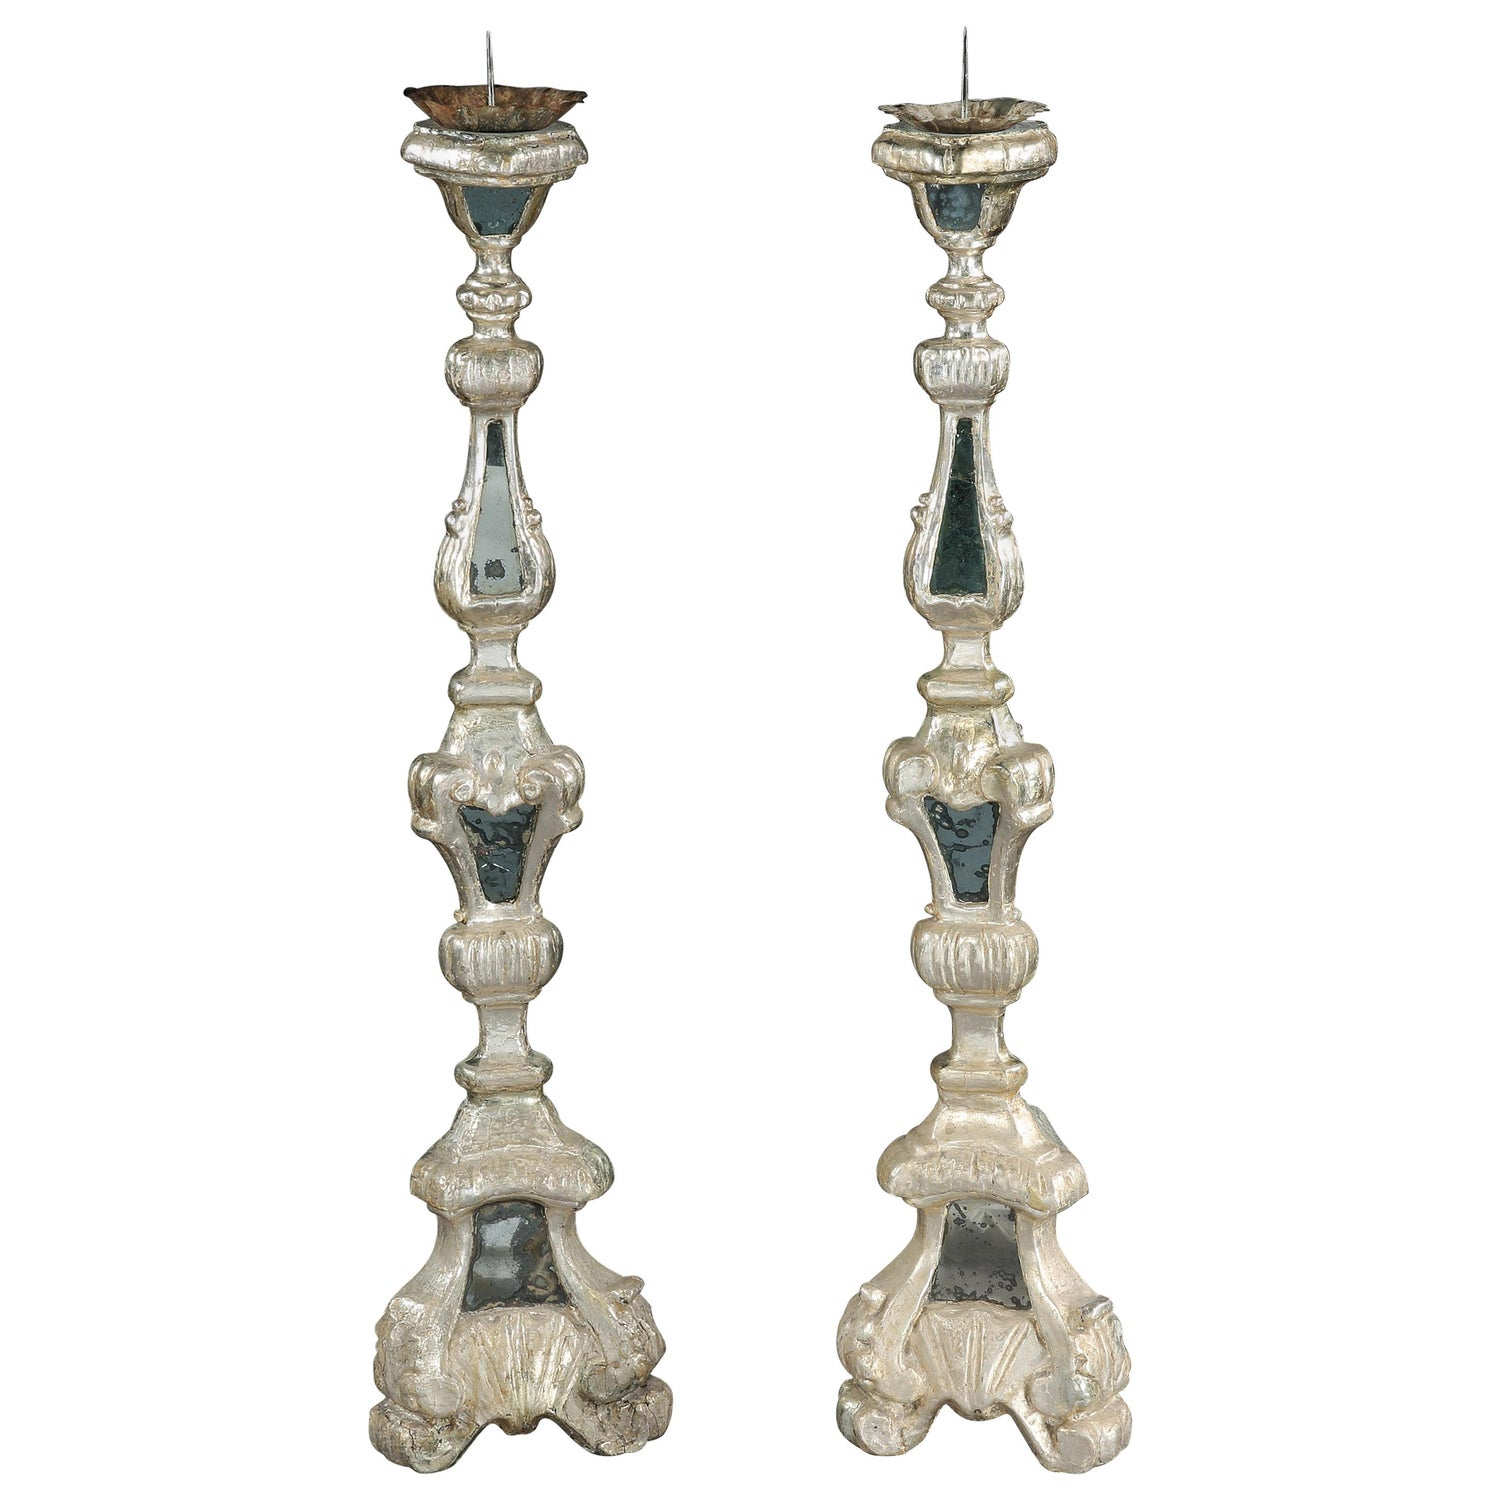 Torcheres Candlestands Pair Silver-Gilt Mirror Plate Italian Rococo